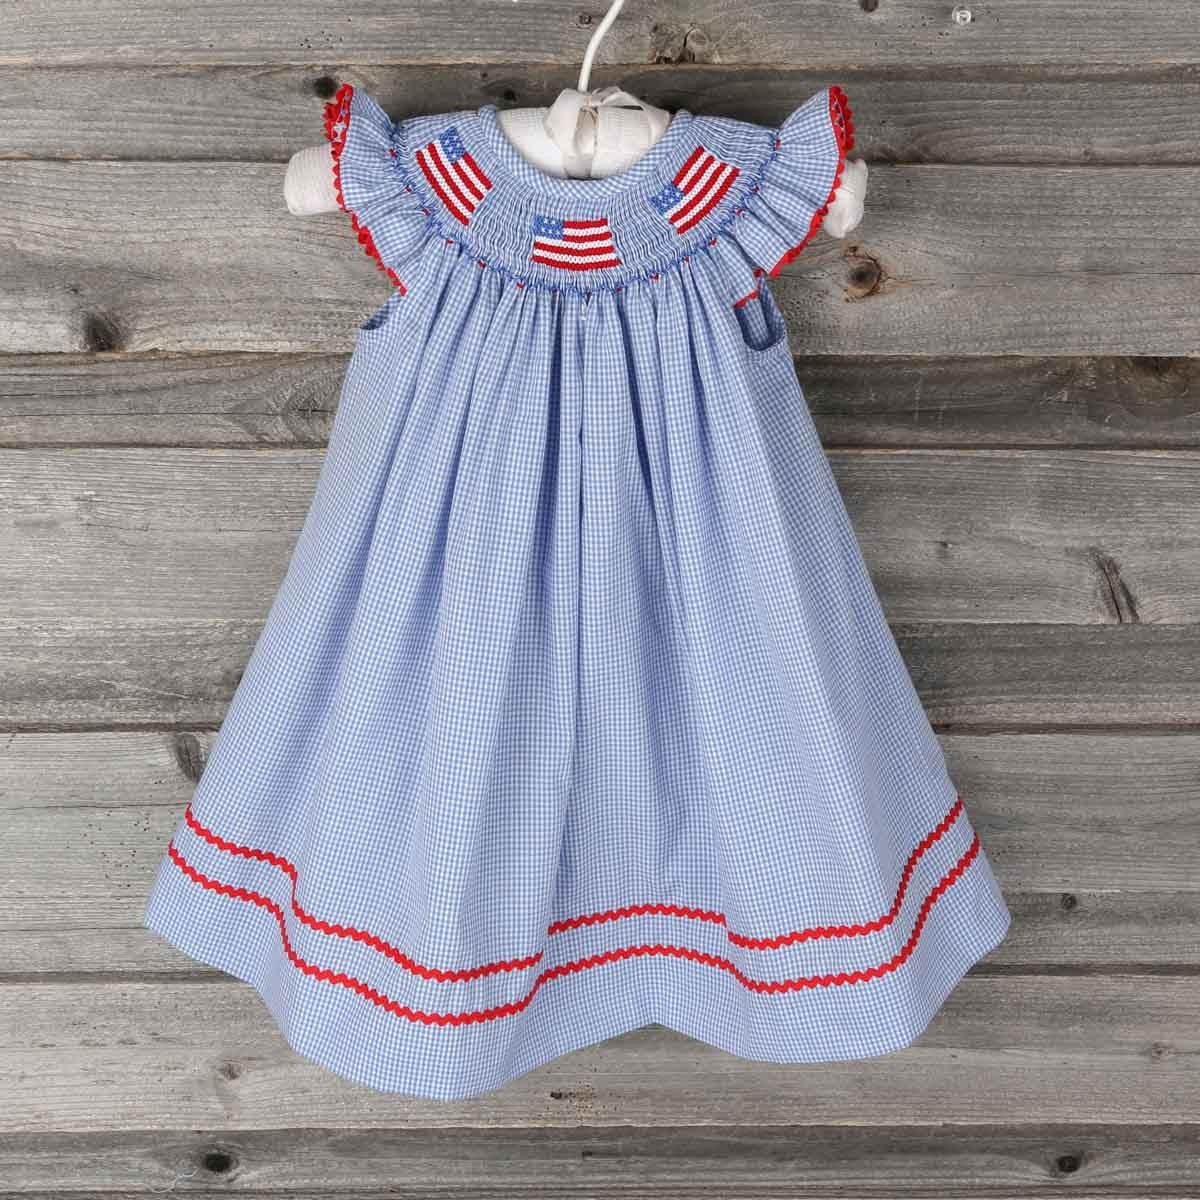 42f586cfc46 Smocked Flag Dress by Southern Sunshine Kids from Smocked Auctions ...